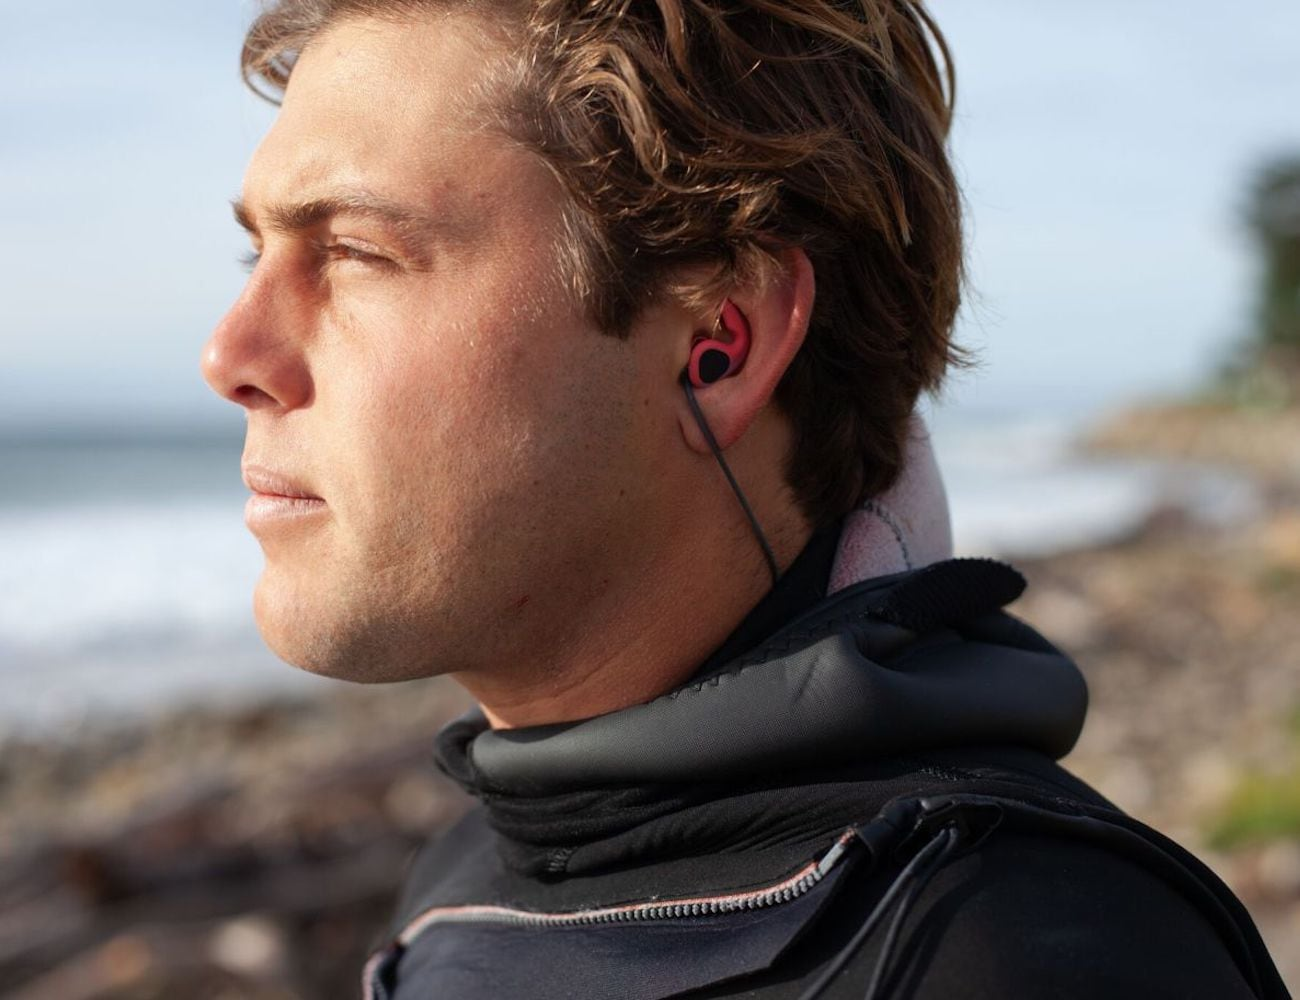 SurfEars 3.0 Adjustable Surfing Ear Plugs keep sound in and water out